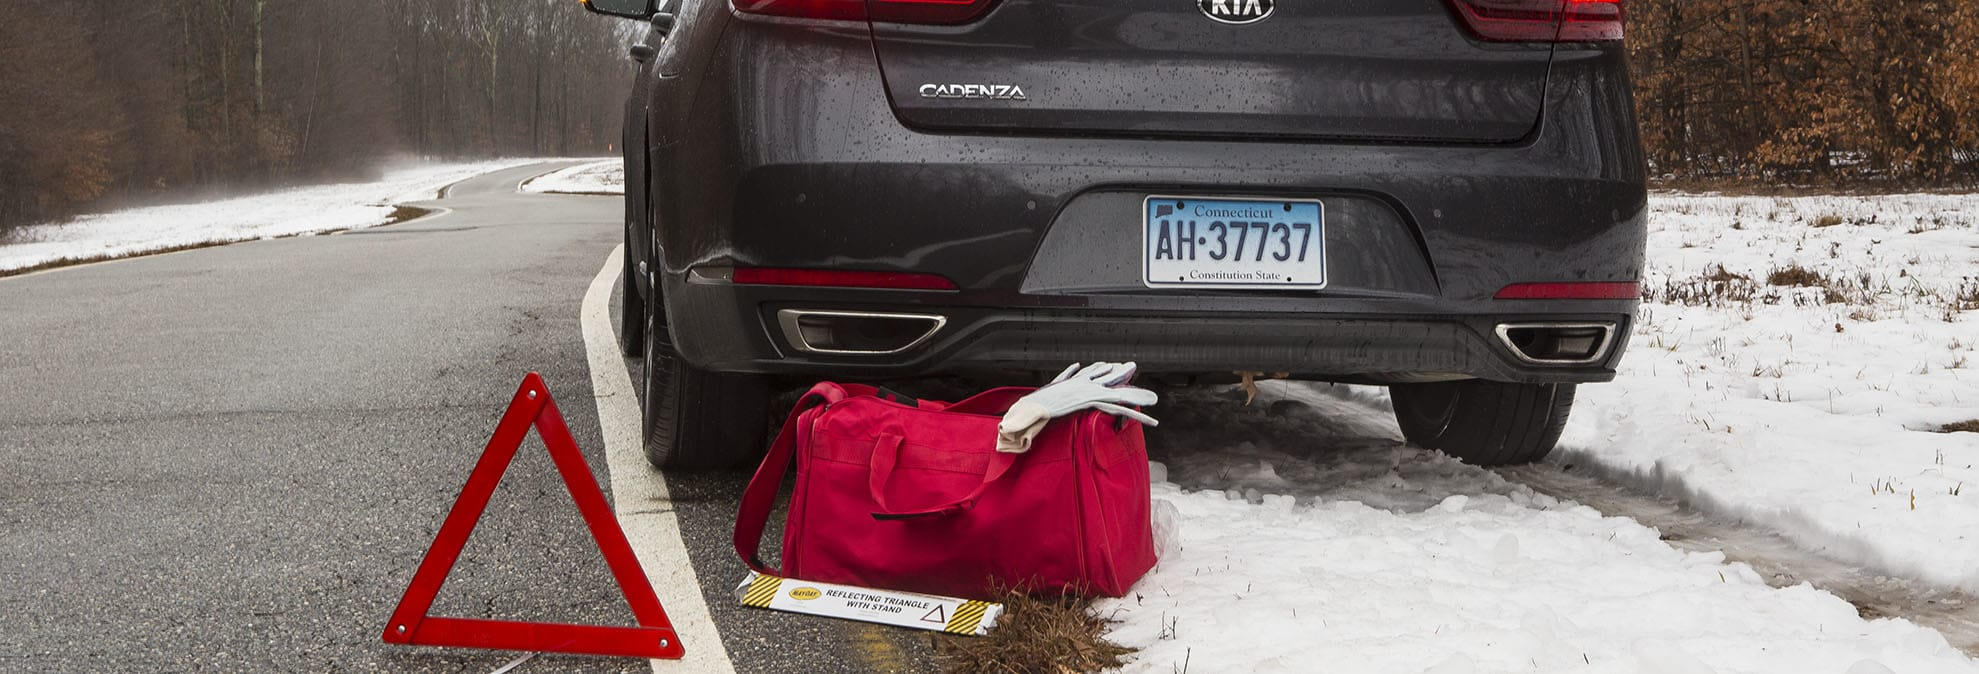 Be Prepared With a Winter Car Emergency Kit - Consumer Reports